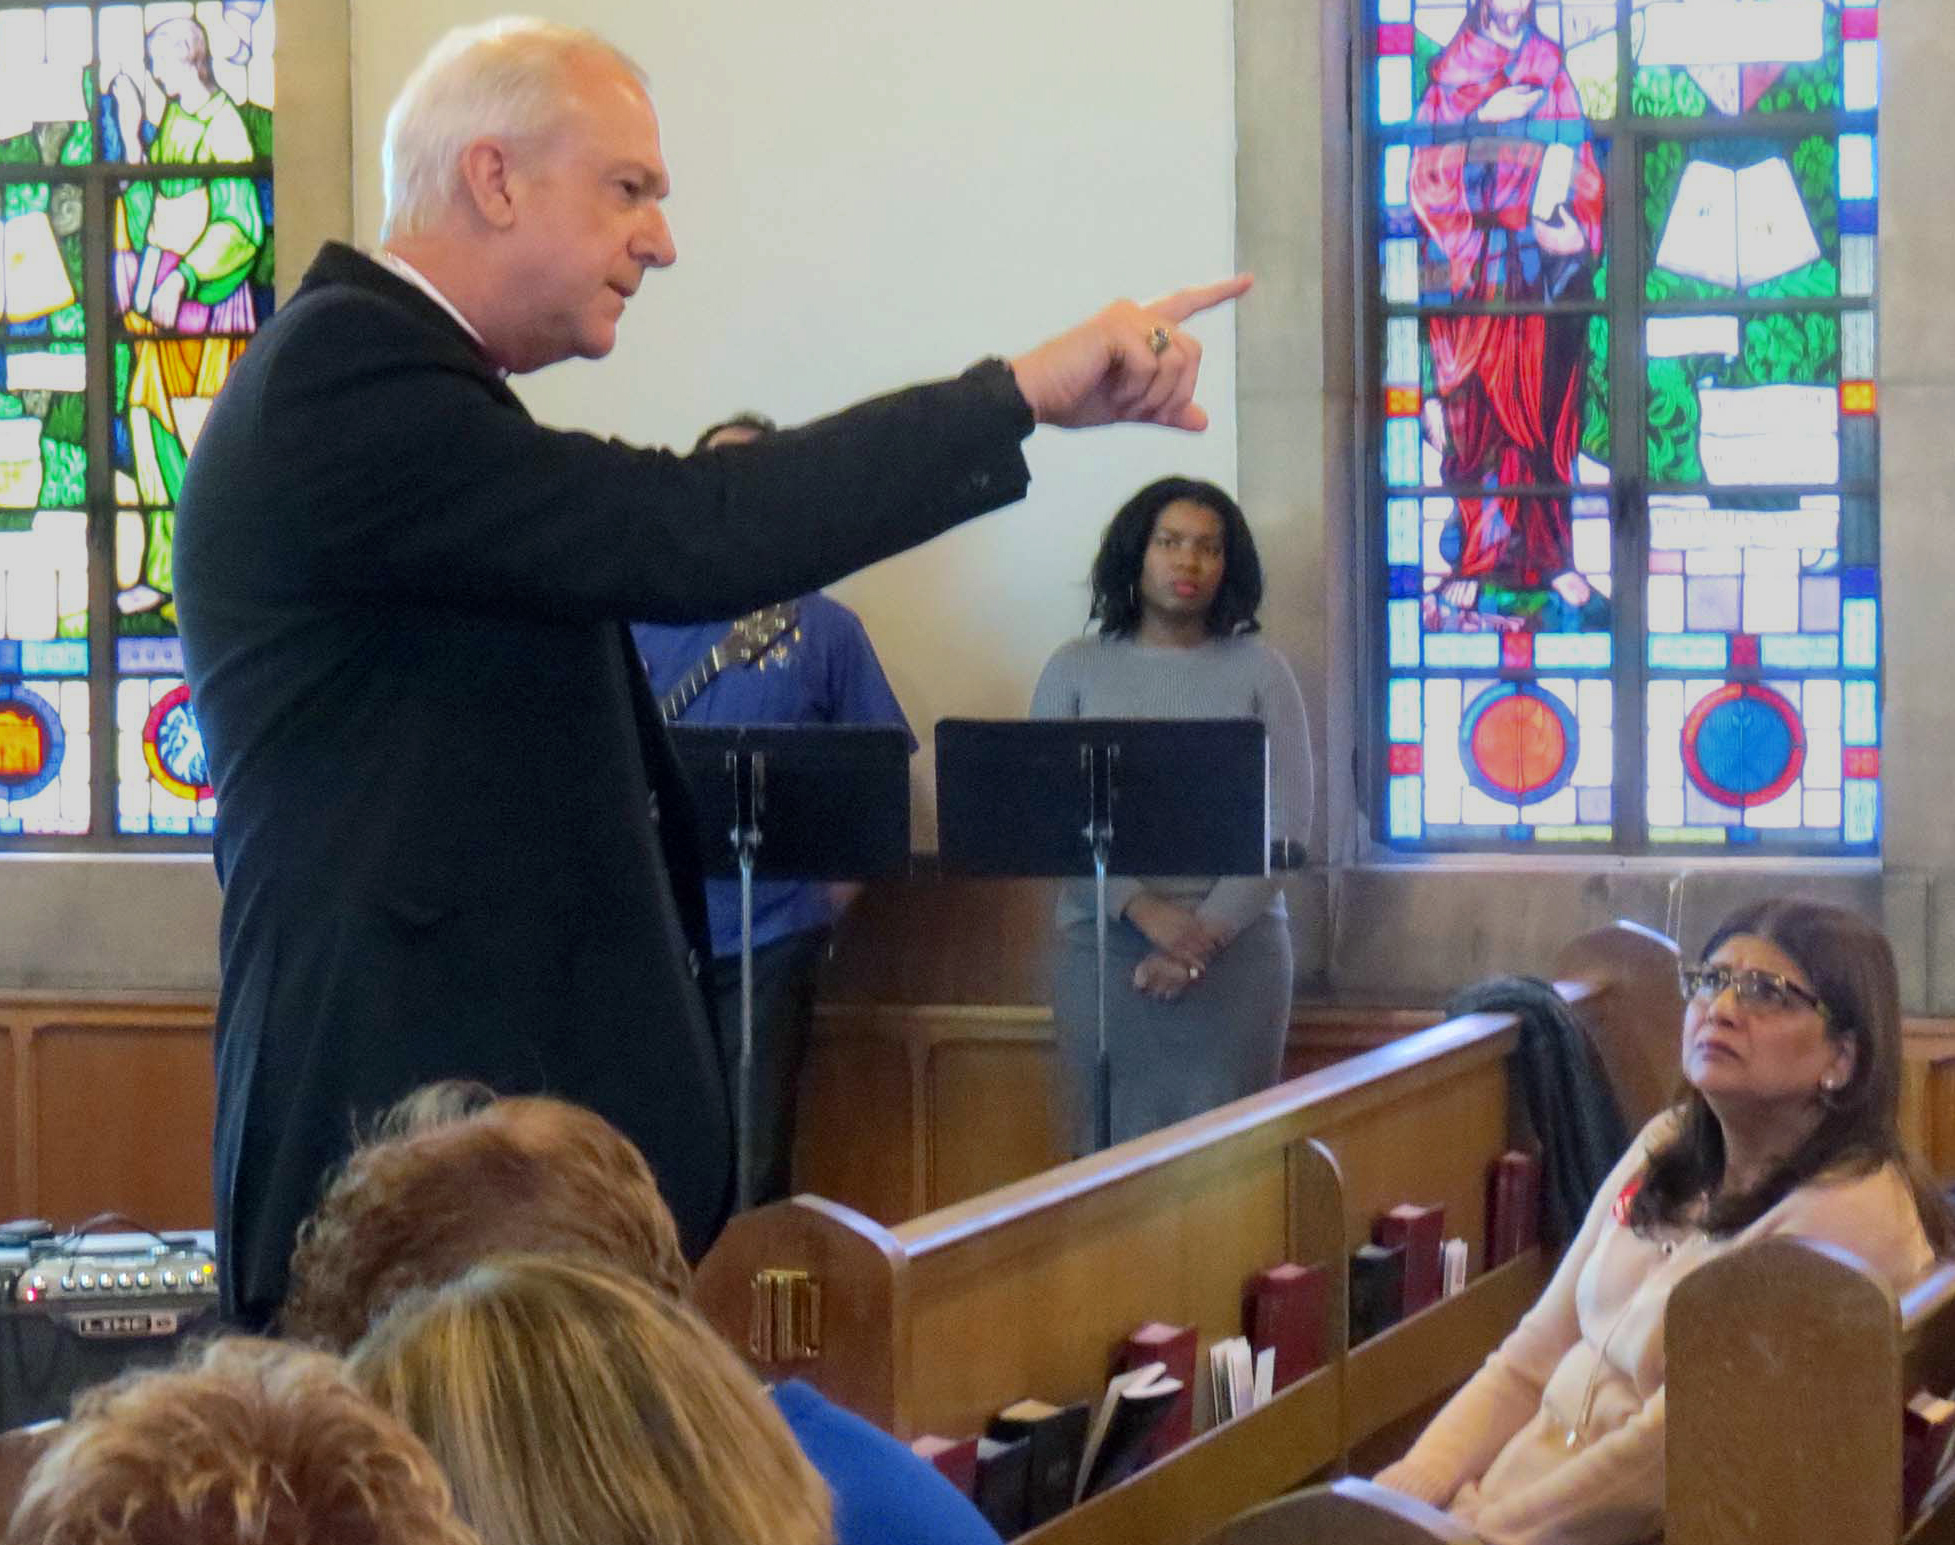 Bishop Thomas J. Bickerton told those gathered at the New York Conference's Immigration Vigil and Forum that this